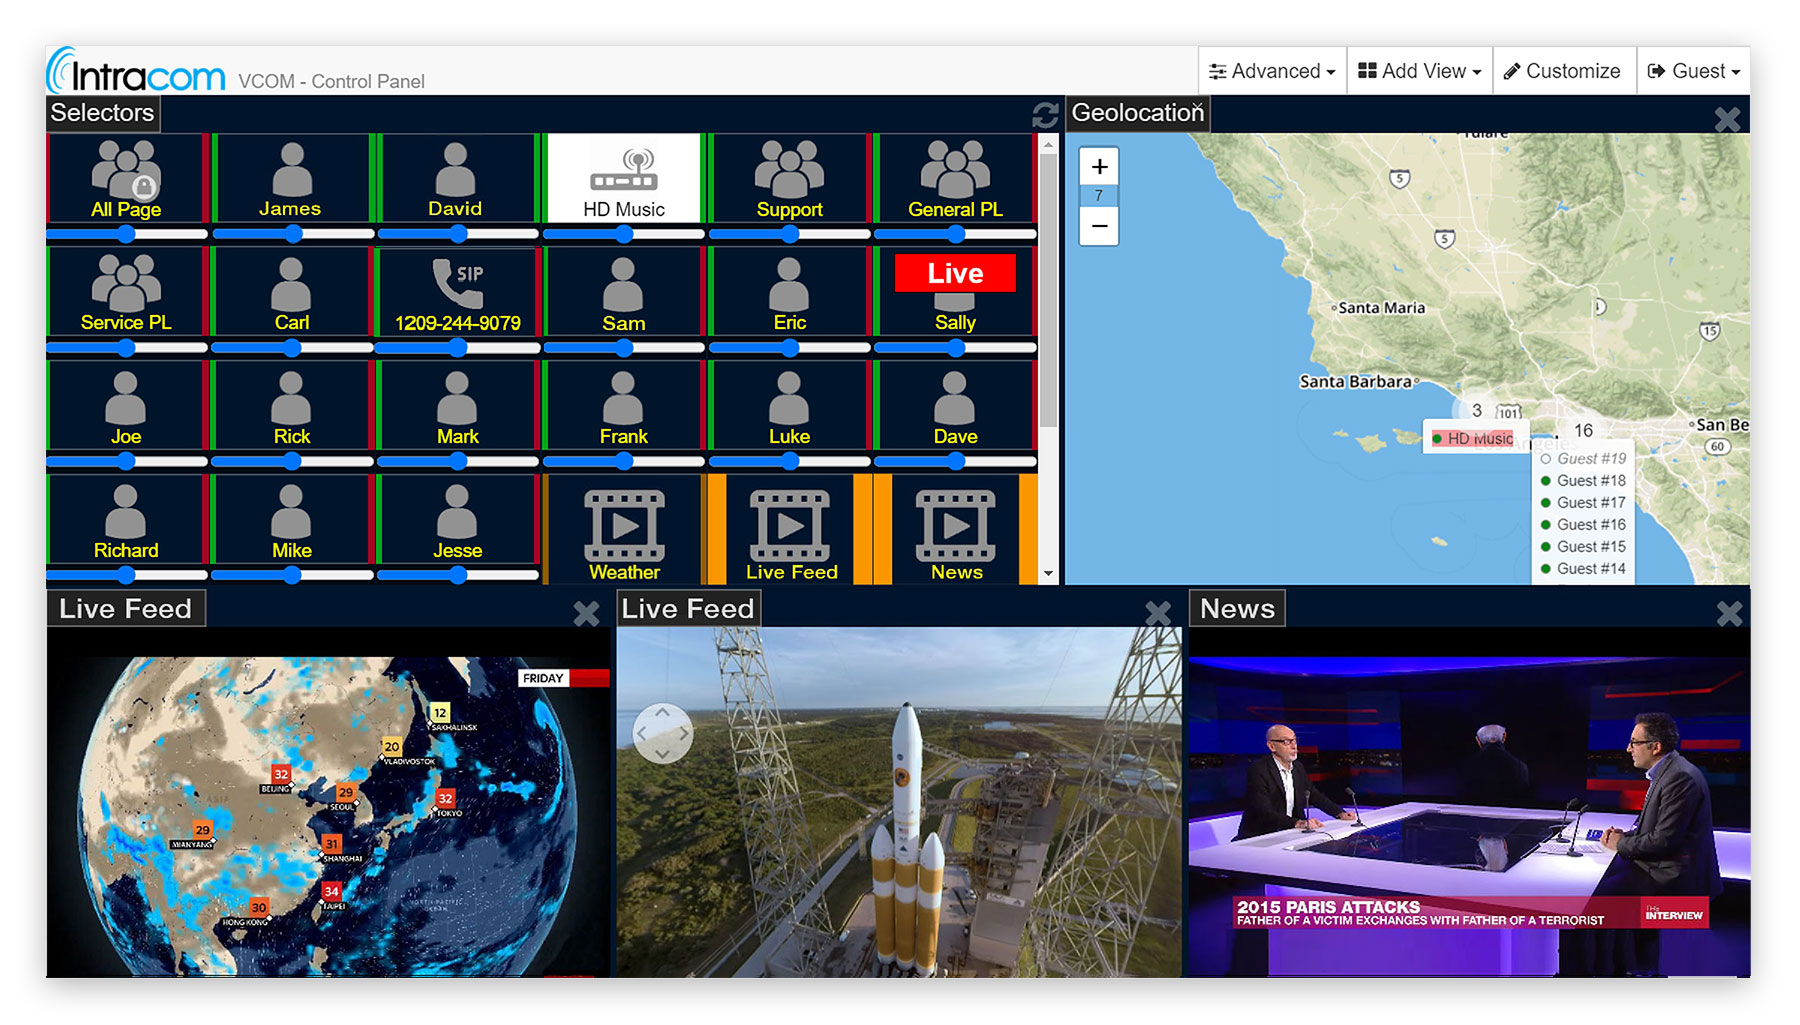 VCOM WebRTC Control Panel with comms, video and geopositioning